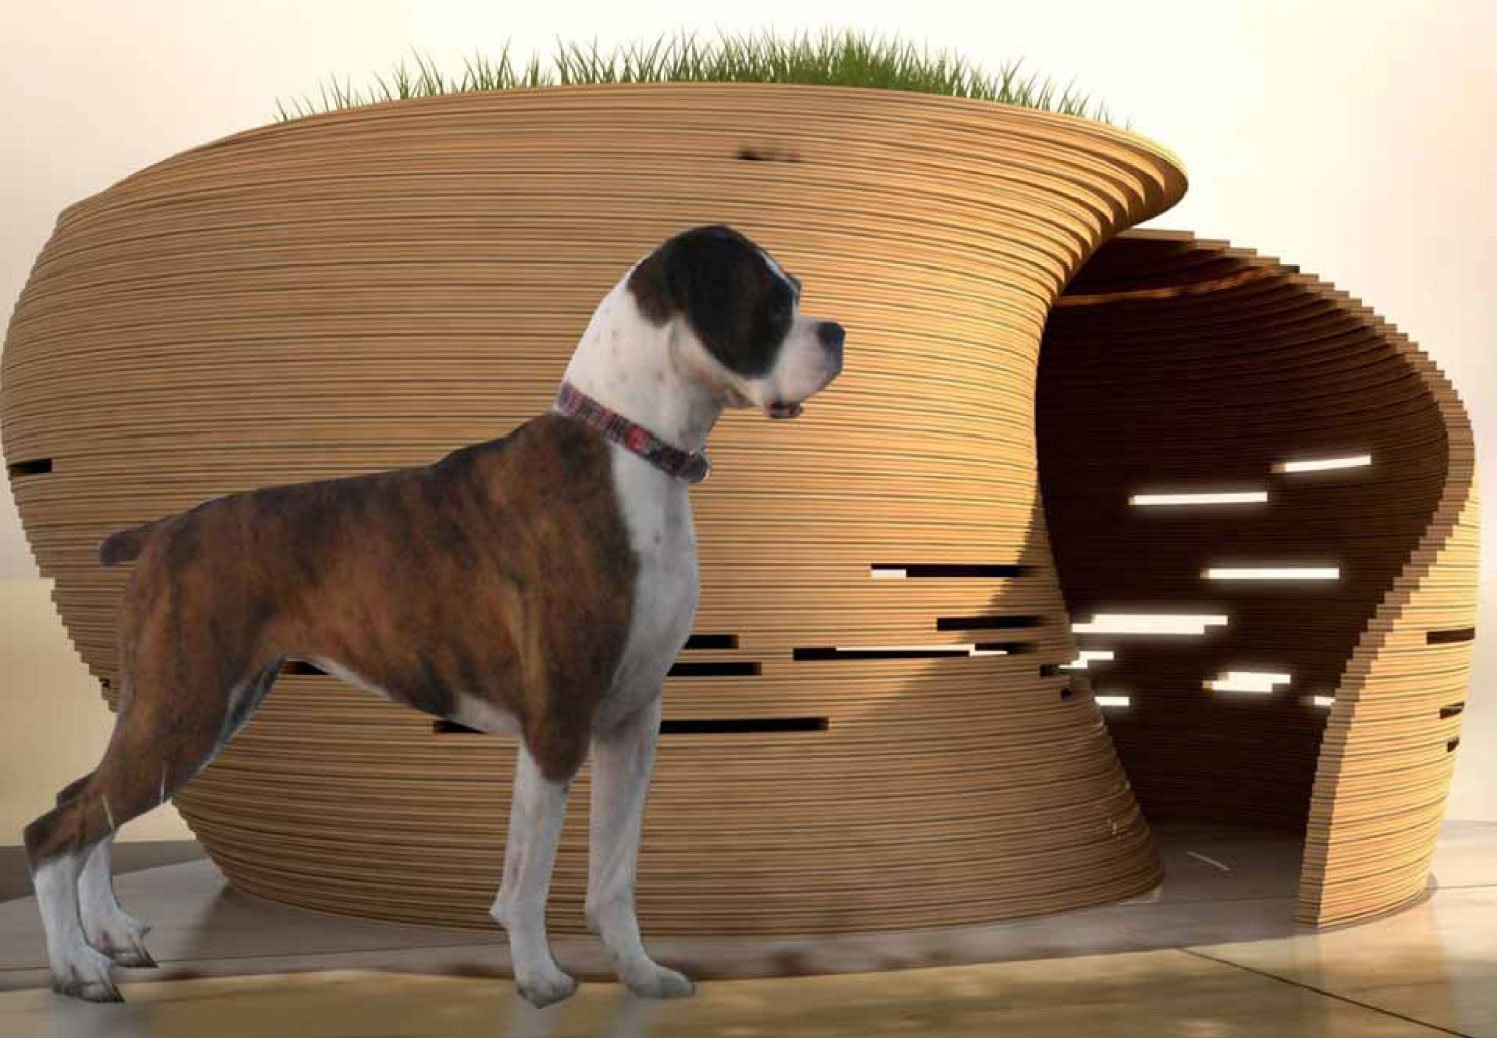 Kpfs william pedersen designs an ultra modern doghouse with green roof